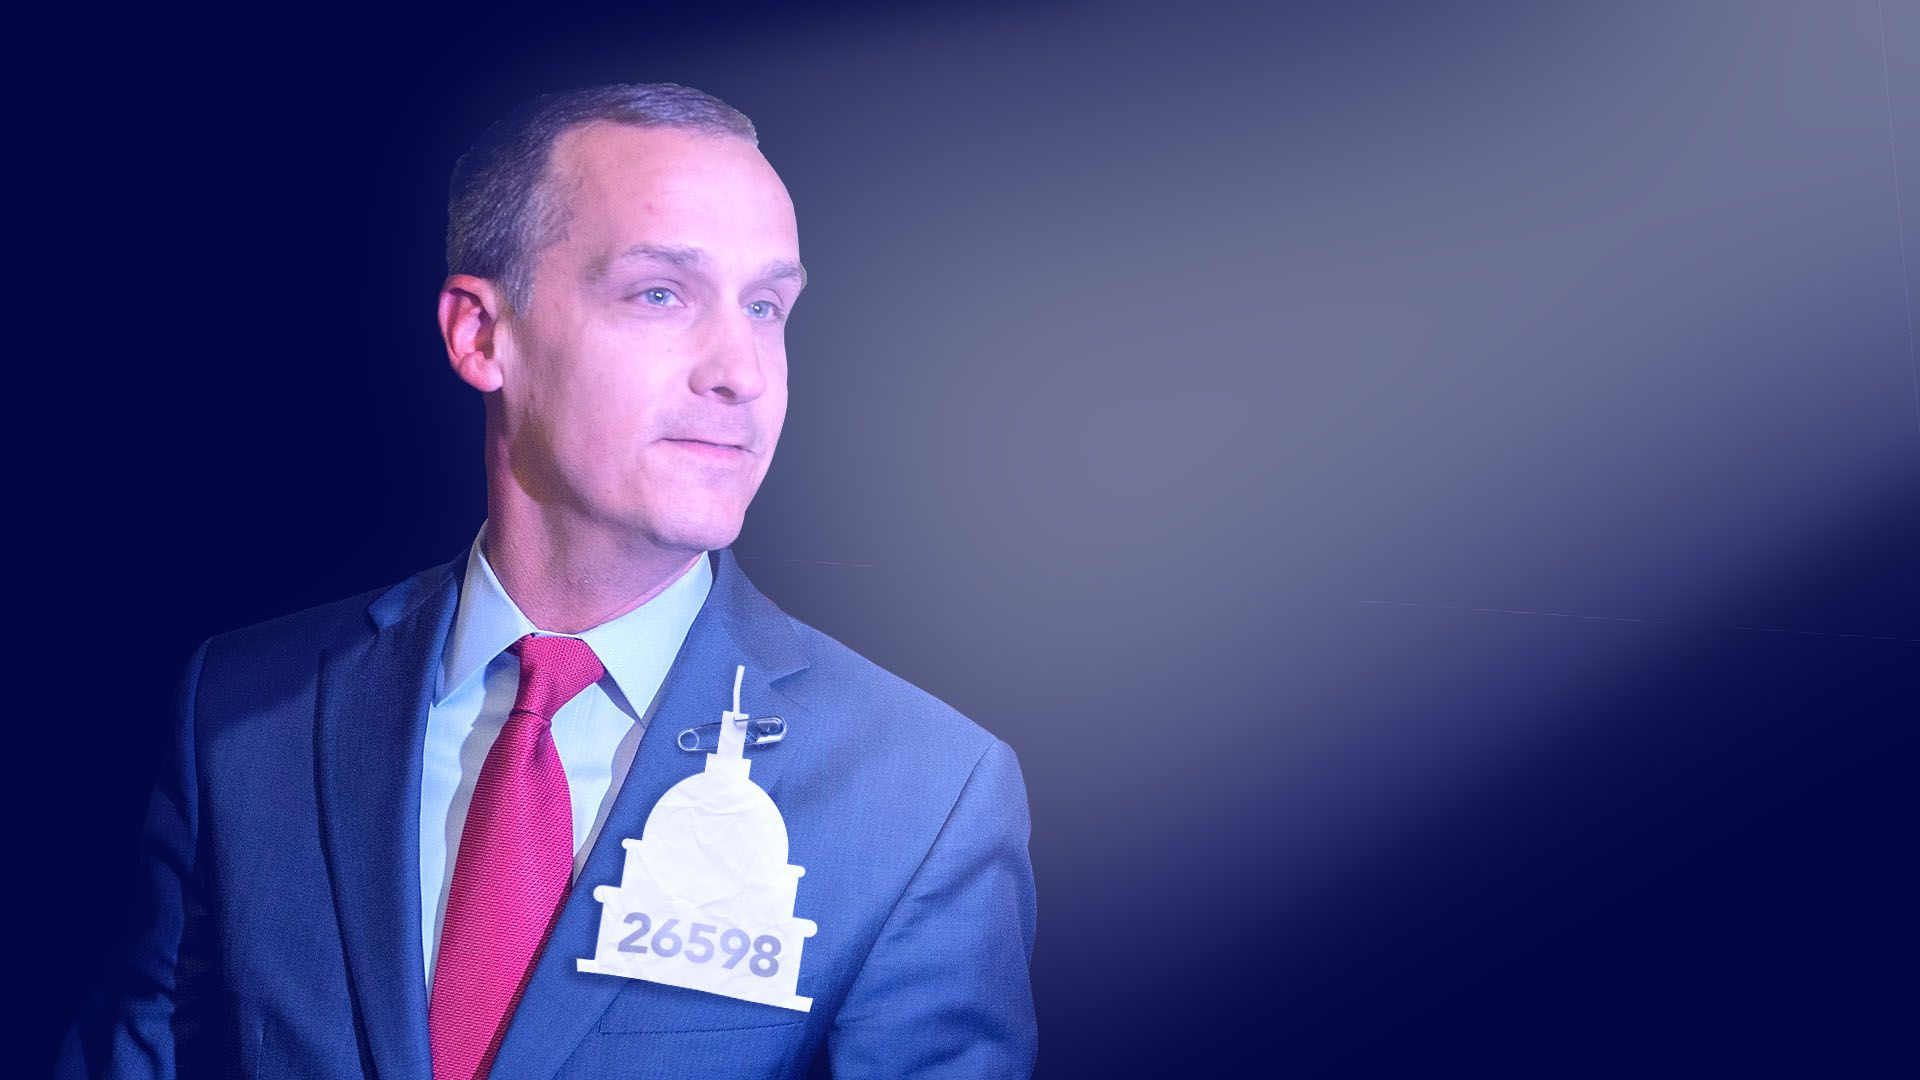 Illustration of Corey Lewandowski with a spotlight on hm and number pinned to his chest in the shape of the Capitol building